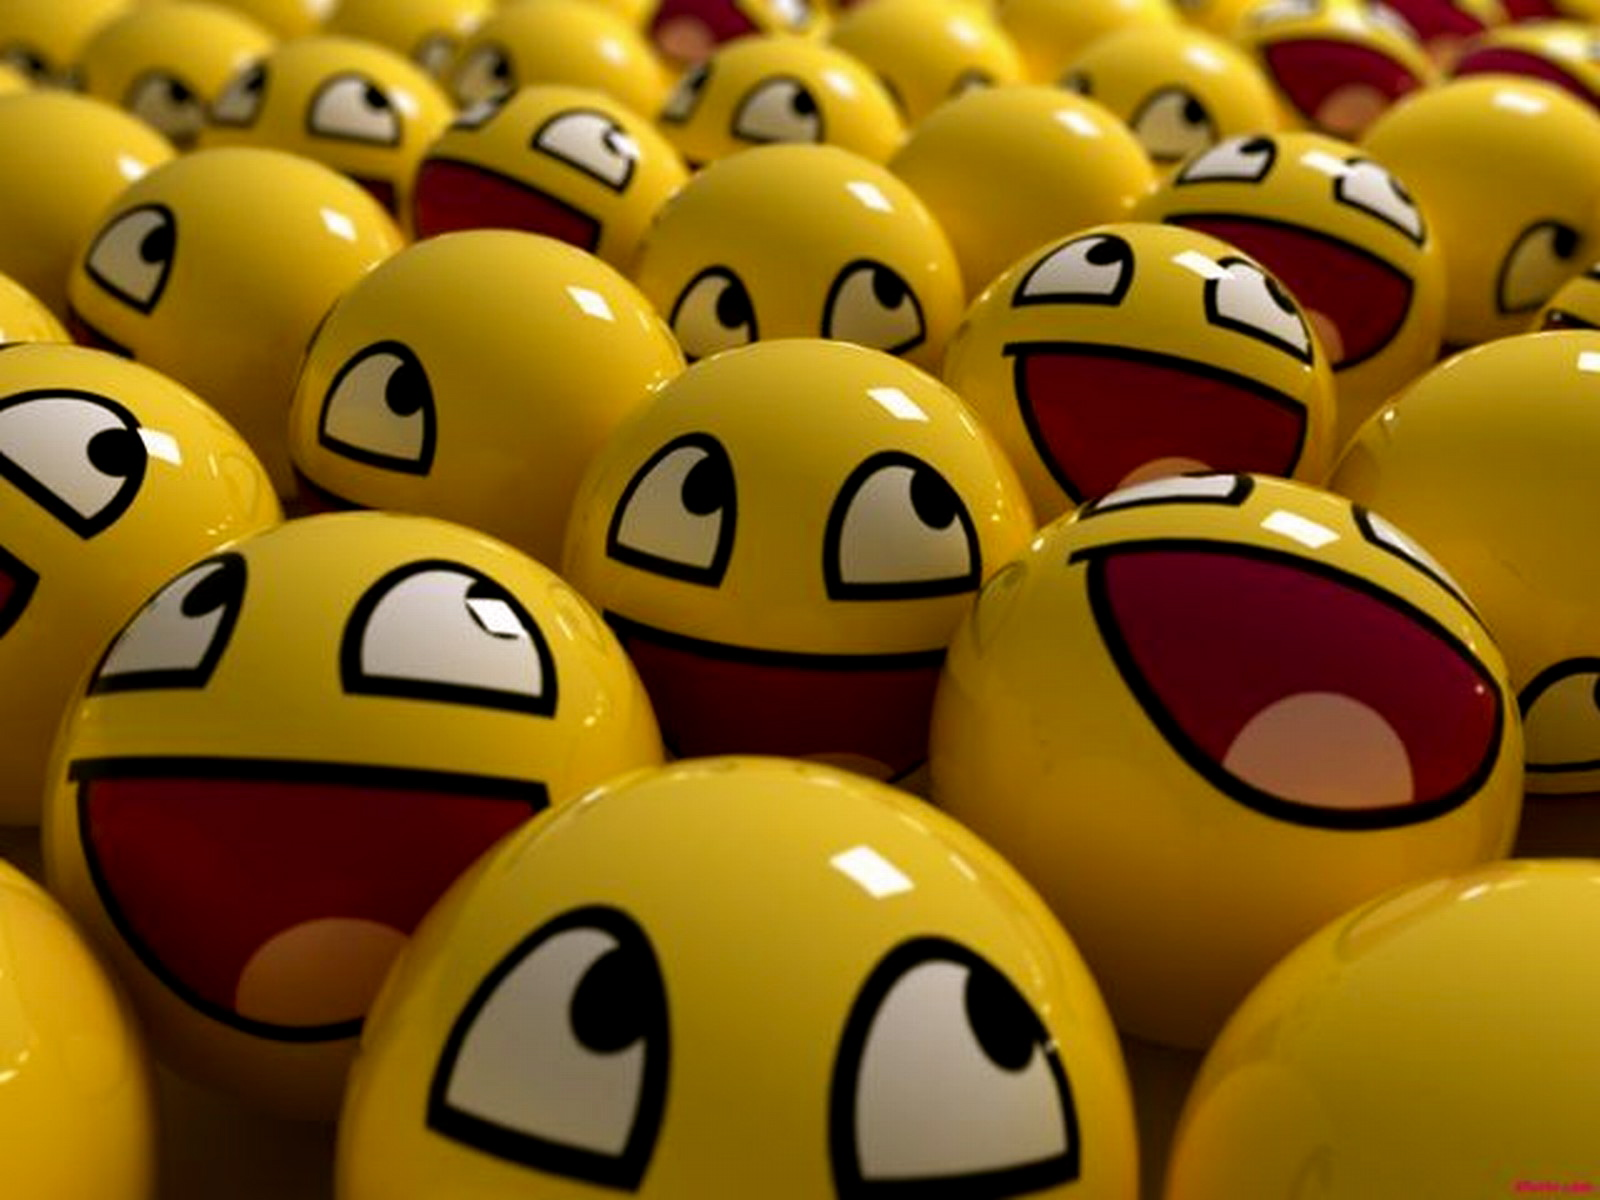 balls Awesome Face HD Wallpaper